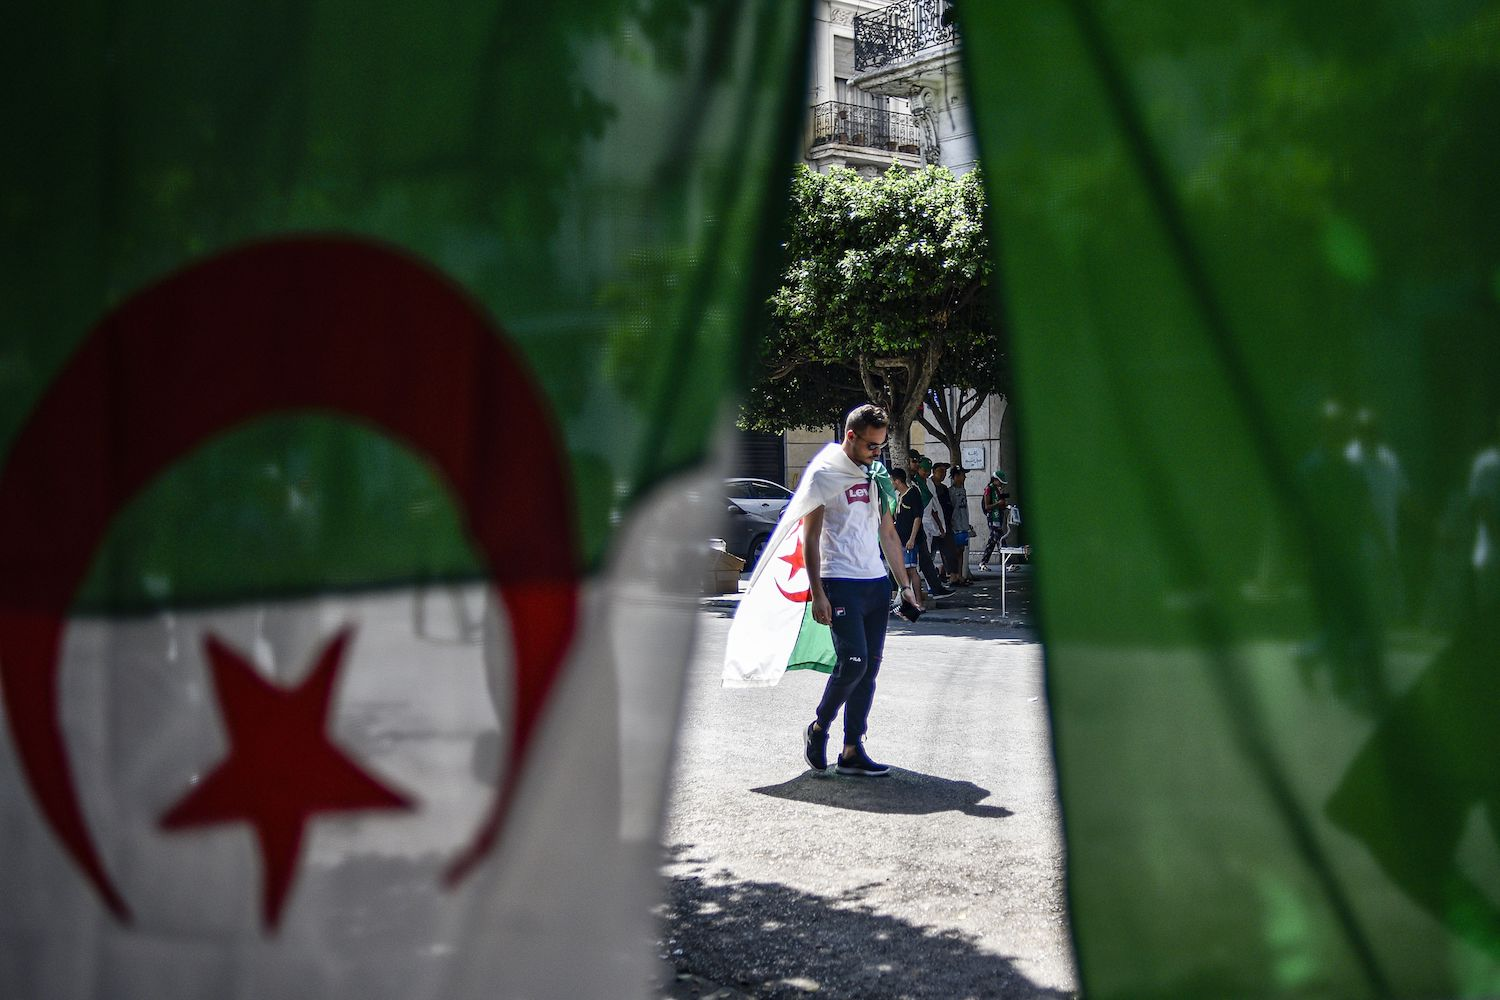 A man draped in an Algerian national flag walks along a street as protesters take part in a demonstration against the ruling class in Algeria's capital, Algiers, on Aug. 23, for the 27th consecutive Friday and marking six months since the movement began.